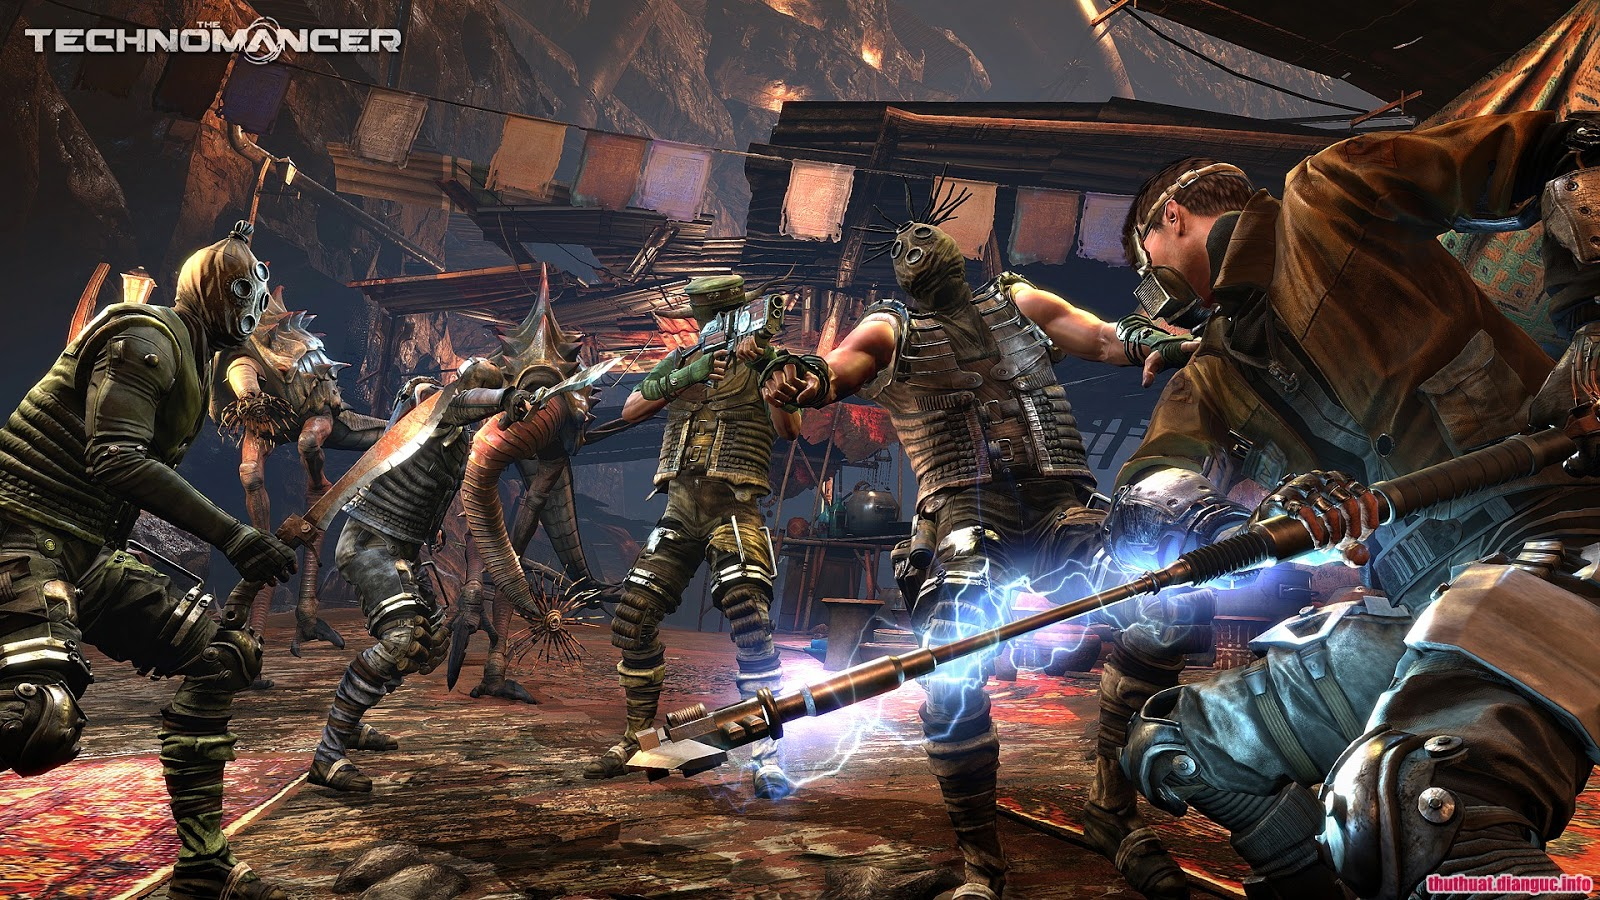 The Technomancer, The Technomancer free download, Tải Game The Technomancer Full Crack, The Technomancer Download Full Version